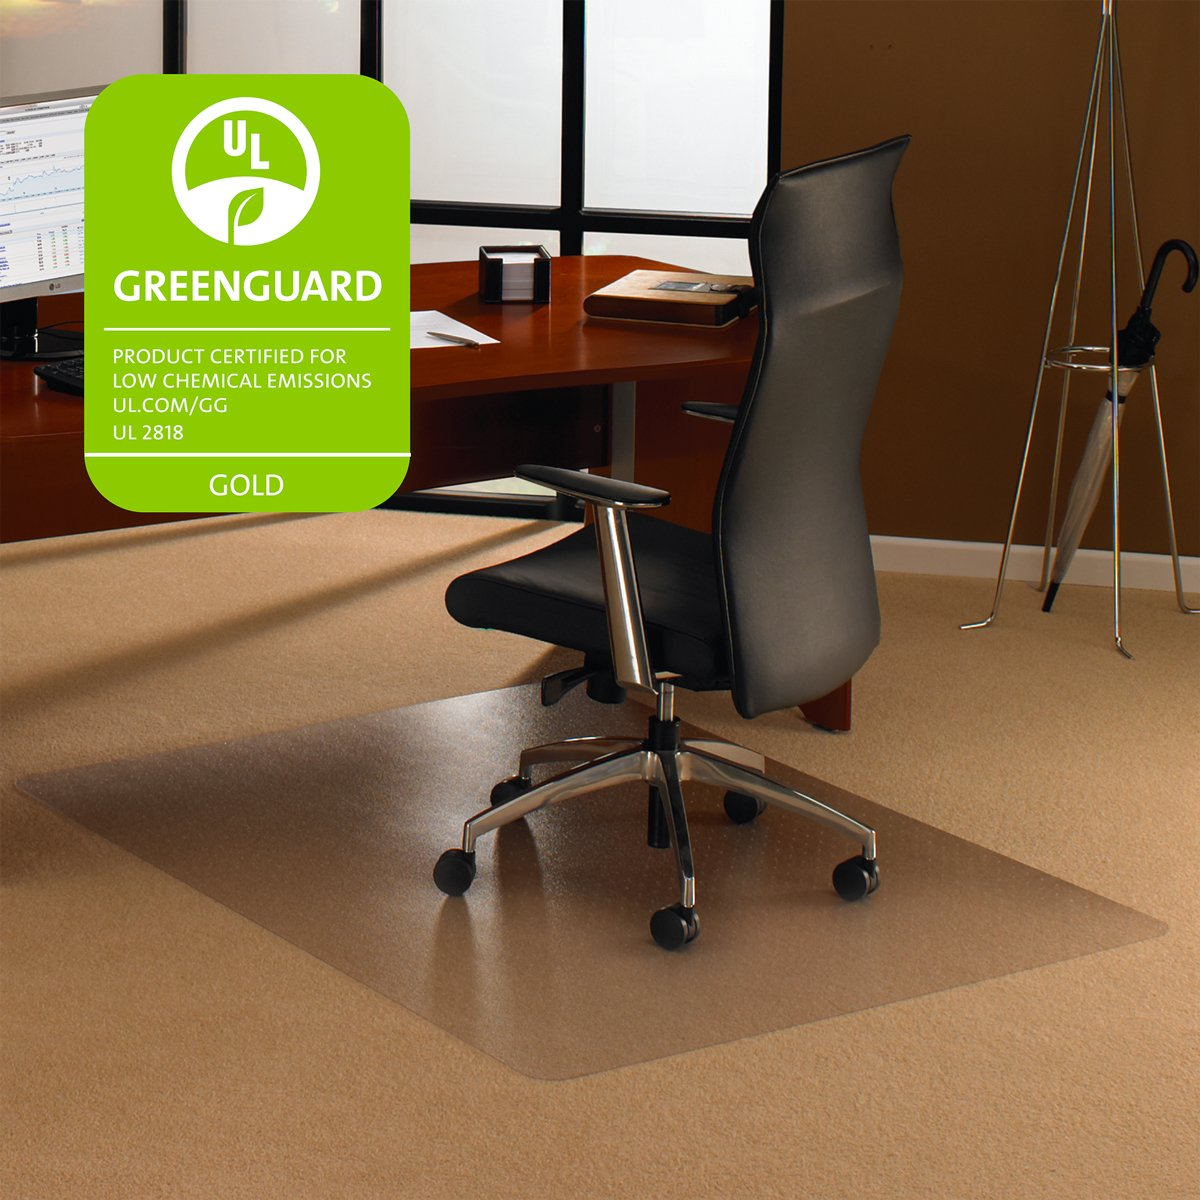 Amazon.com : Floortex EC118927ER Cleartex Ultimat Chair Mat For High Pile  Carpets, 35 X 47, Clear : Carpet Protector Chair Mat : Office Products